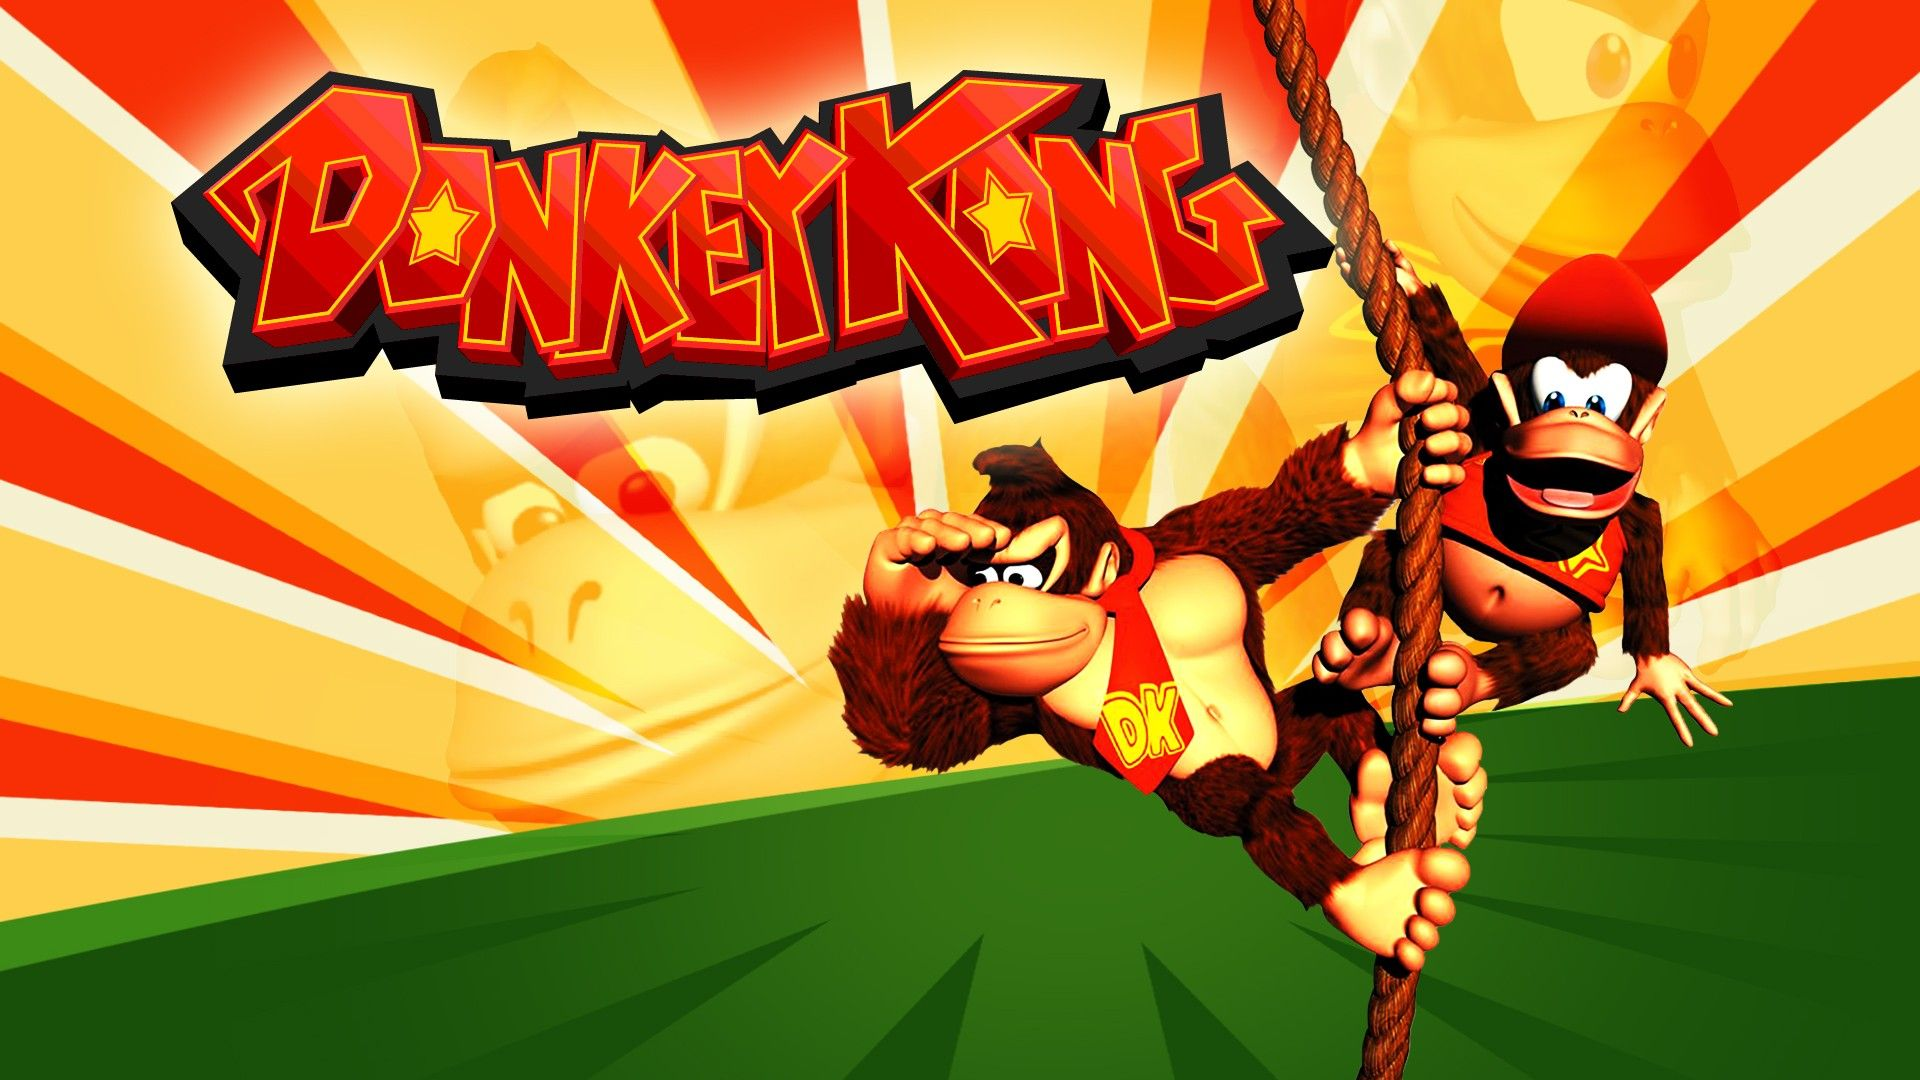 Gameboy Iphone Wallpaper Classic Nes Series Donkey Kong Full Hd Wallpaper And